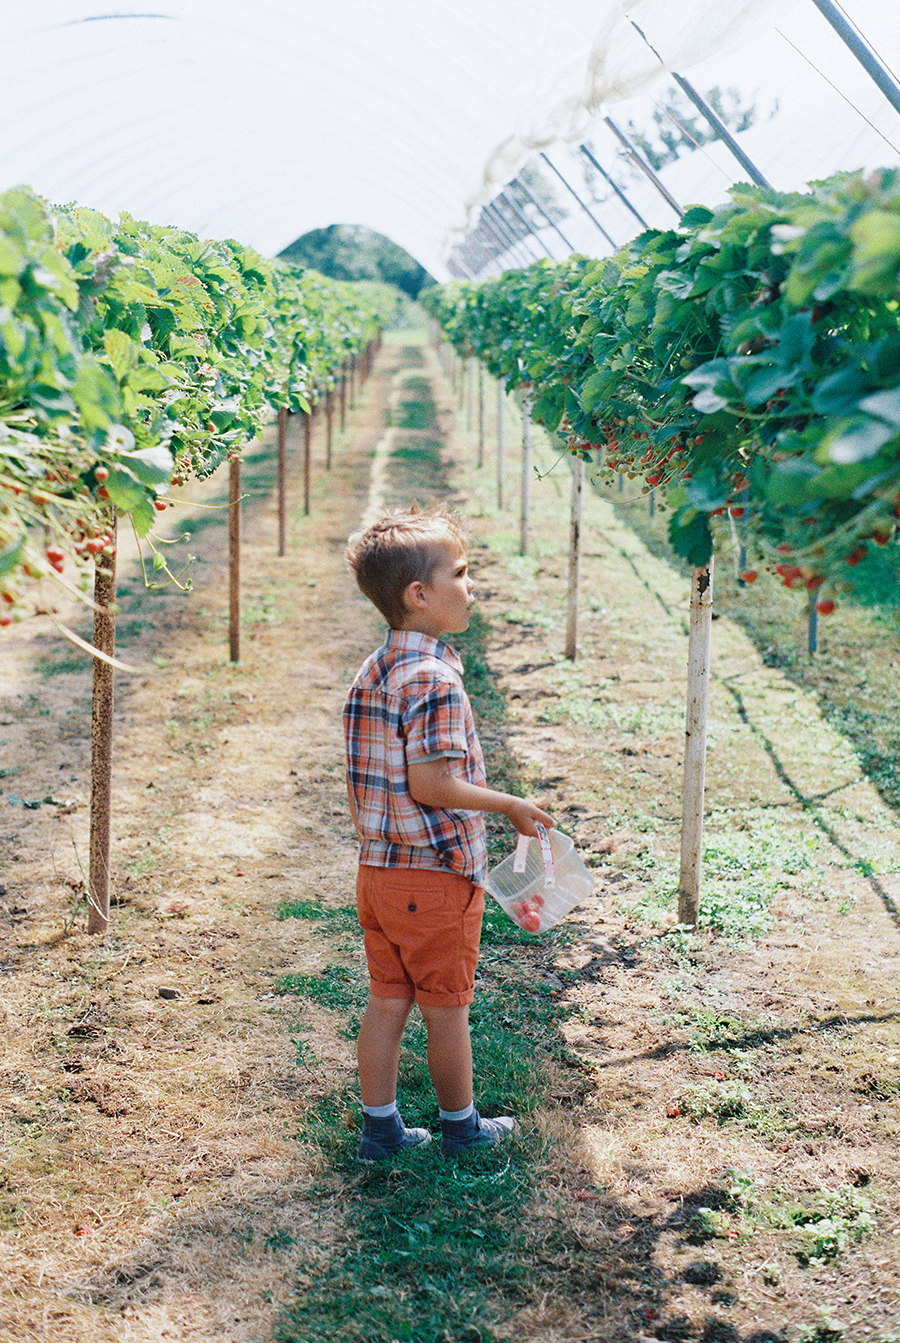 Clive's Fruit Farm Strawberry Picking